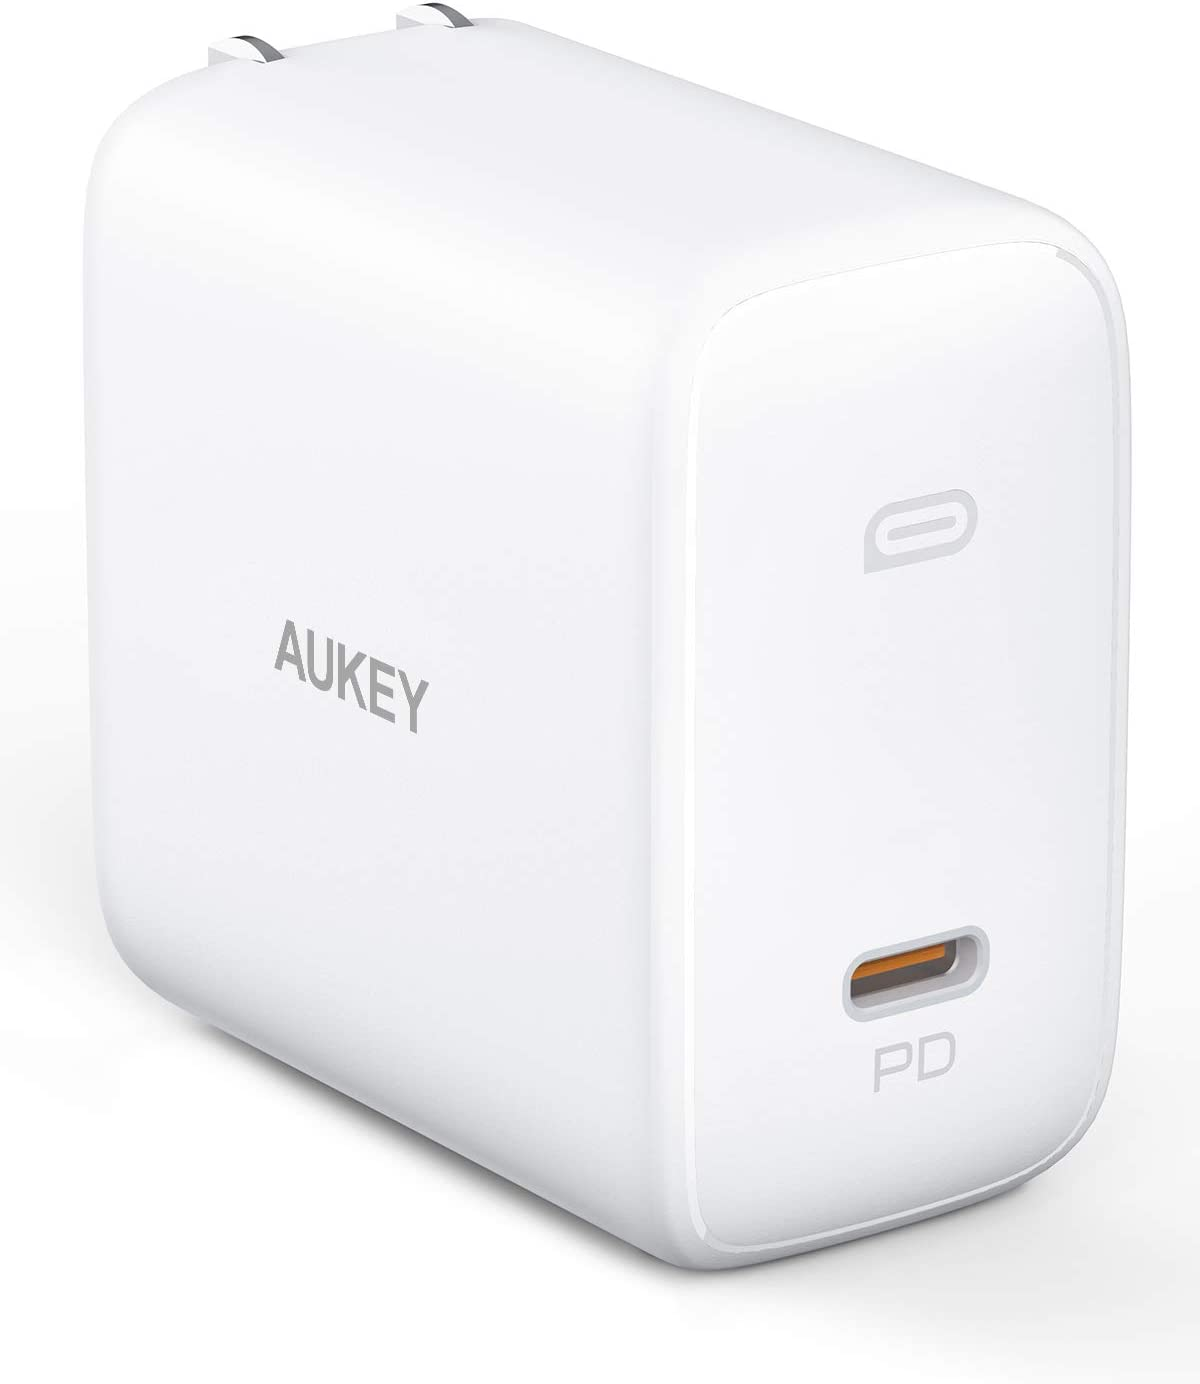 """MacBook Pro Charger 100W, AUKEY Omnia USB C Charger (Upgraded) with GaNFast Technology, PD Charger Power Delivery 3.0 Laptop Charger for MacBook Pro 16"""", iPhone 11 Pro Max, HP Spectre 15"""